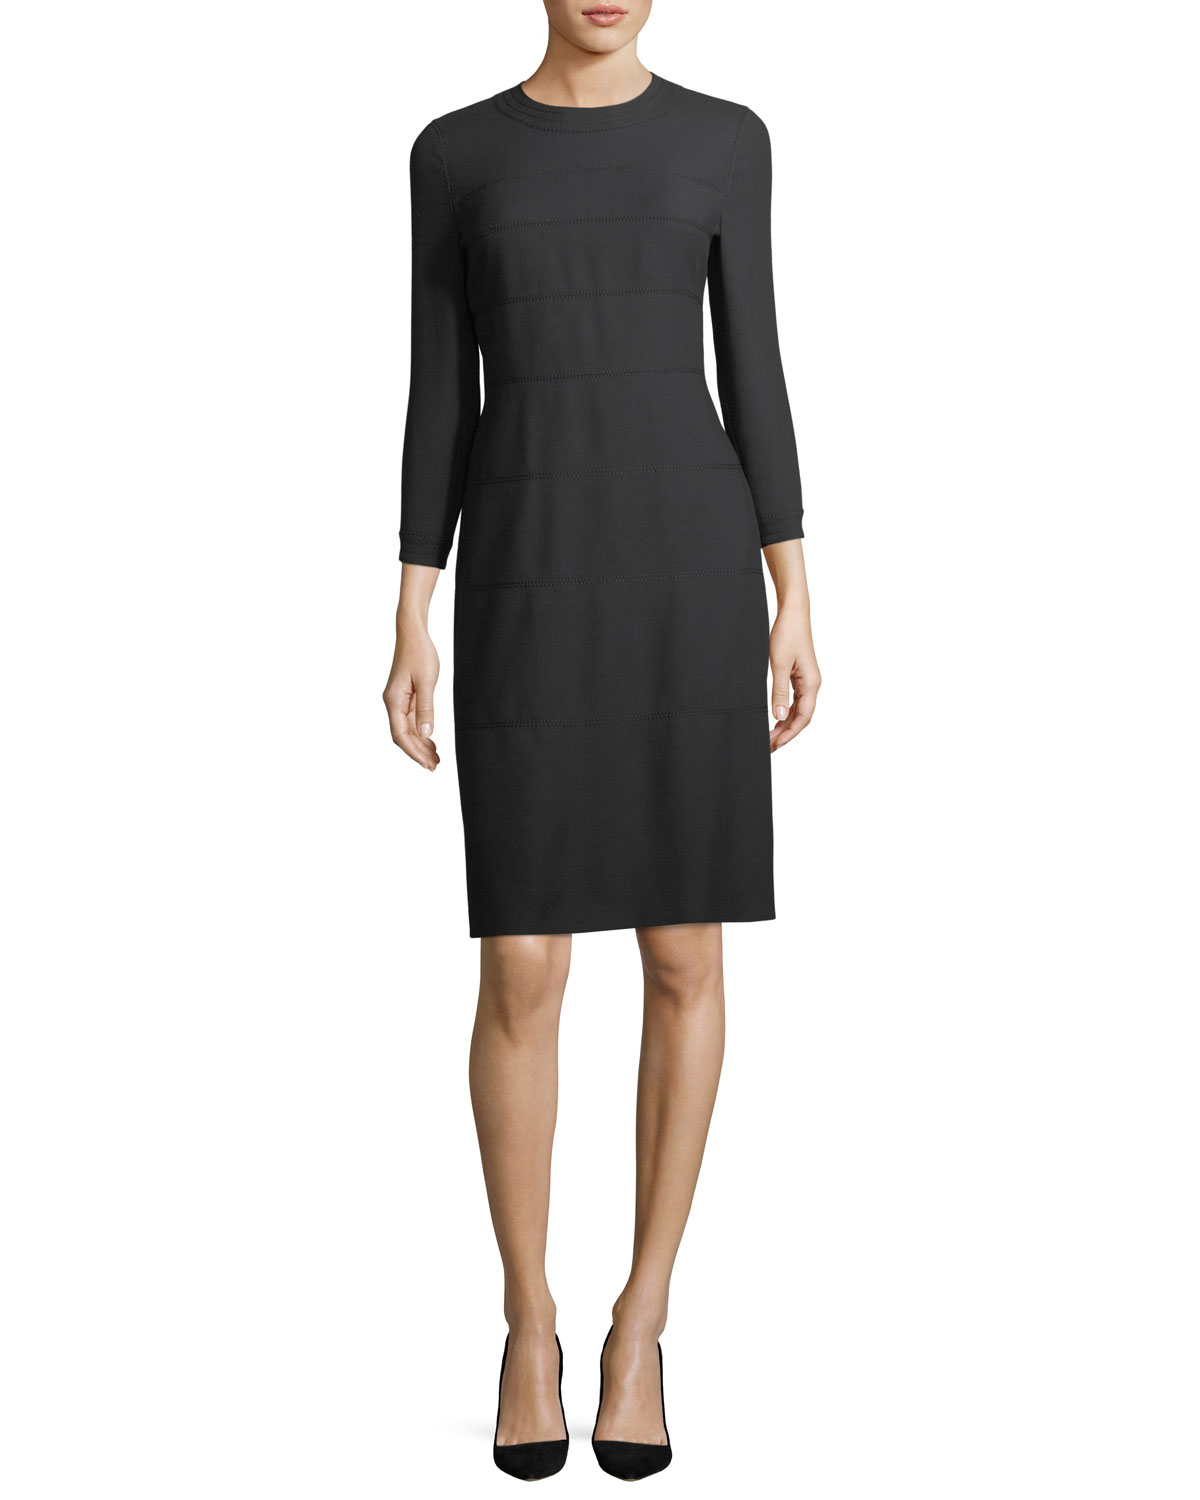 Quick Look. Escada · 3/4-Sleeve Wool/Cotton A-Line Dress. Available in Black